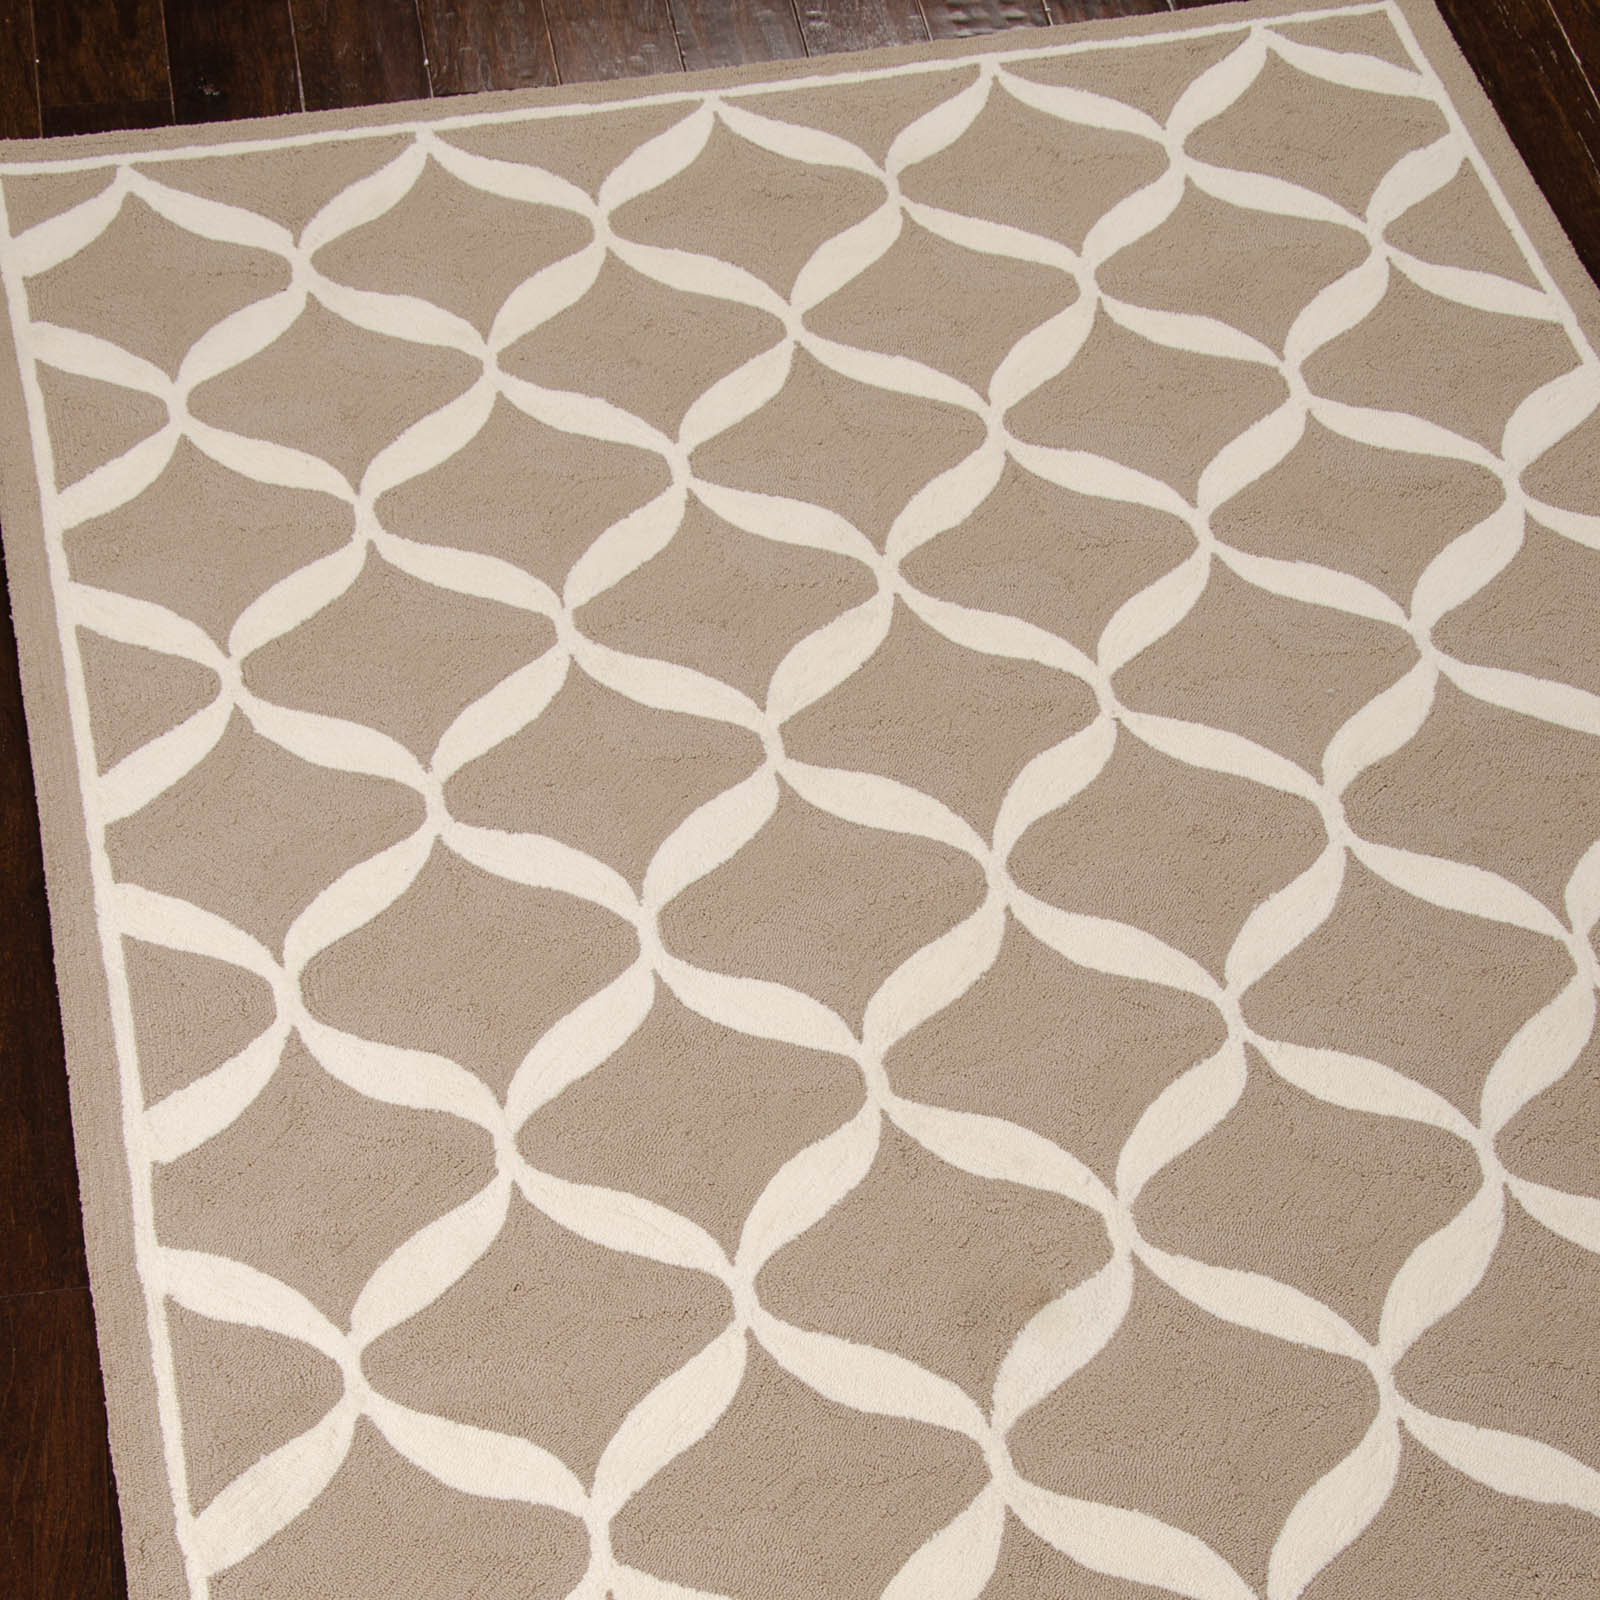 Decor Rugs DER06 by Nourison in Taupe and White